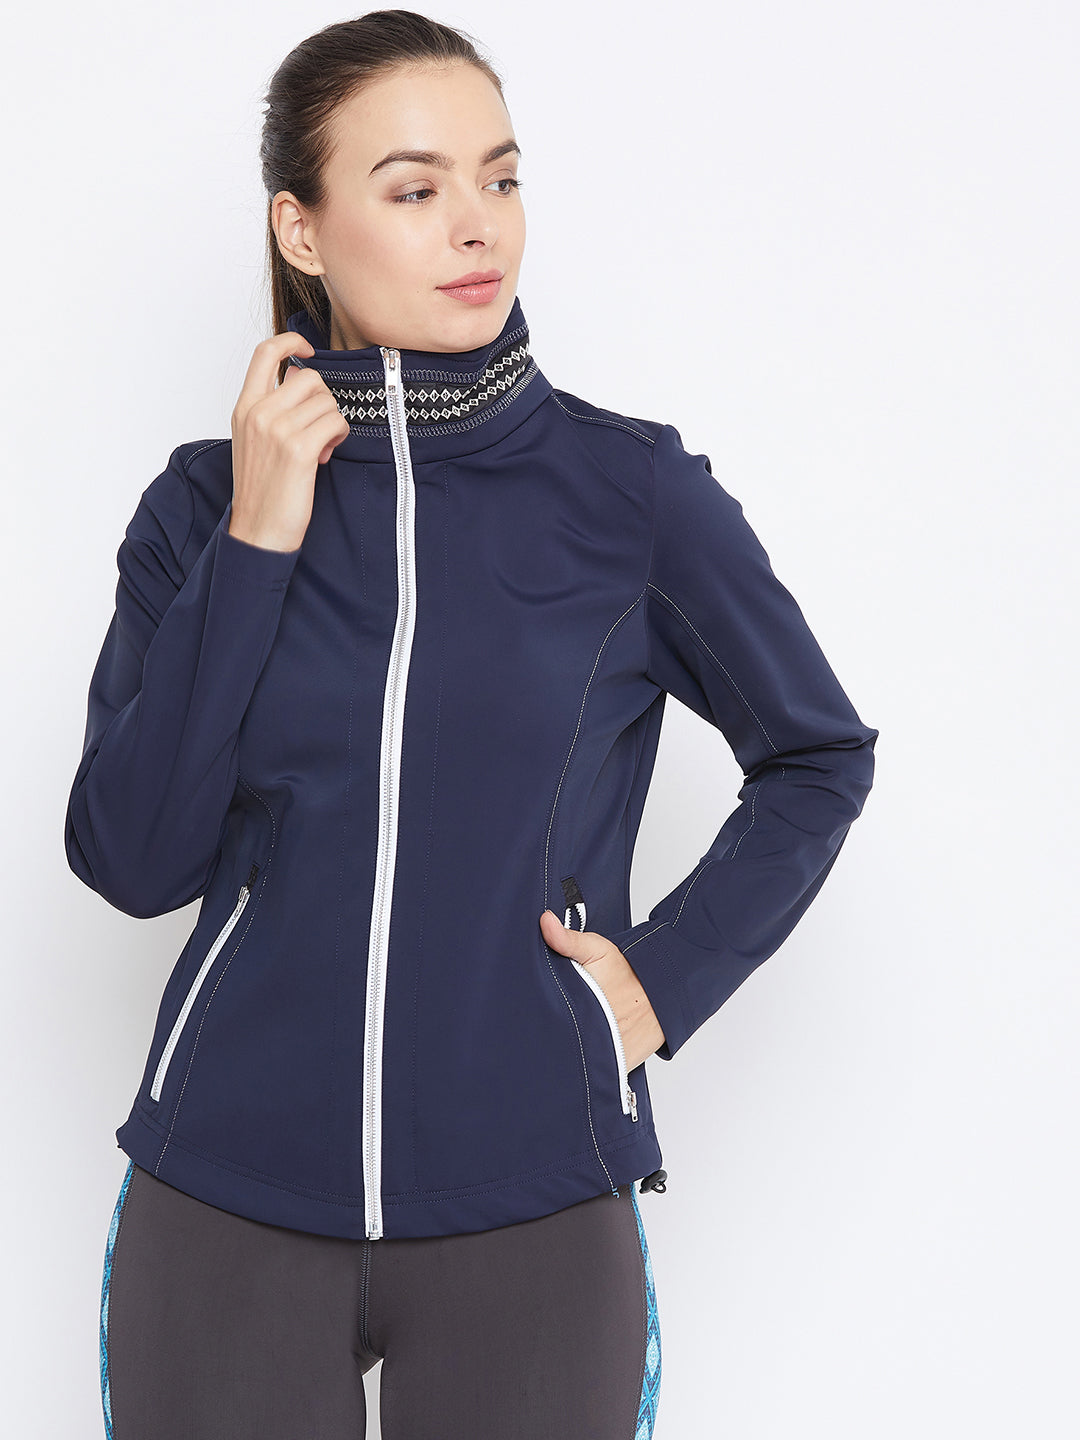 JUMP USA Women Navy Blue Solid Sporty Jacket